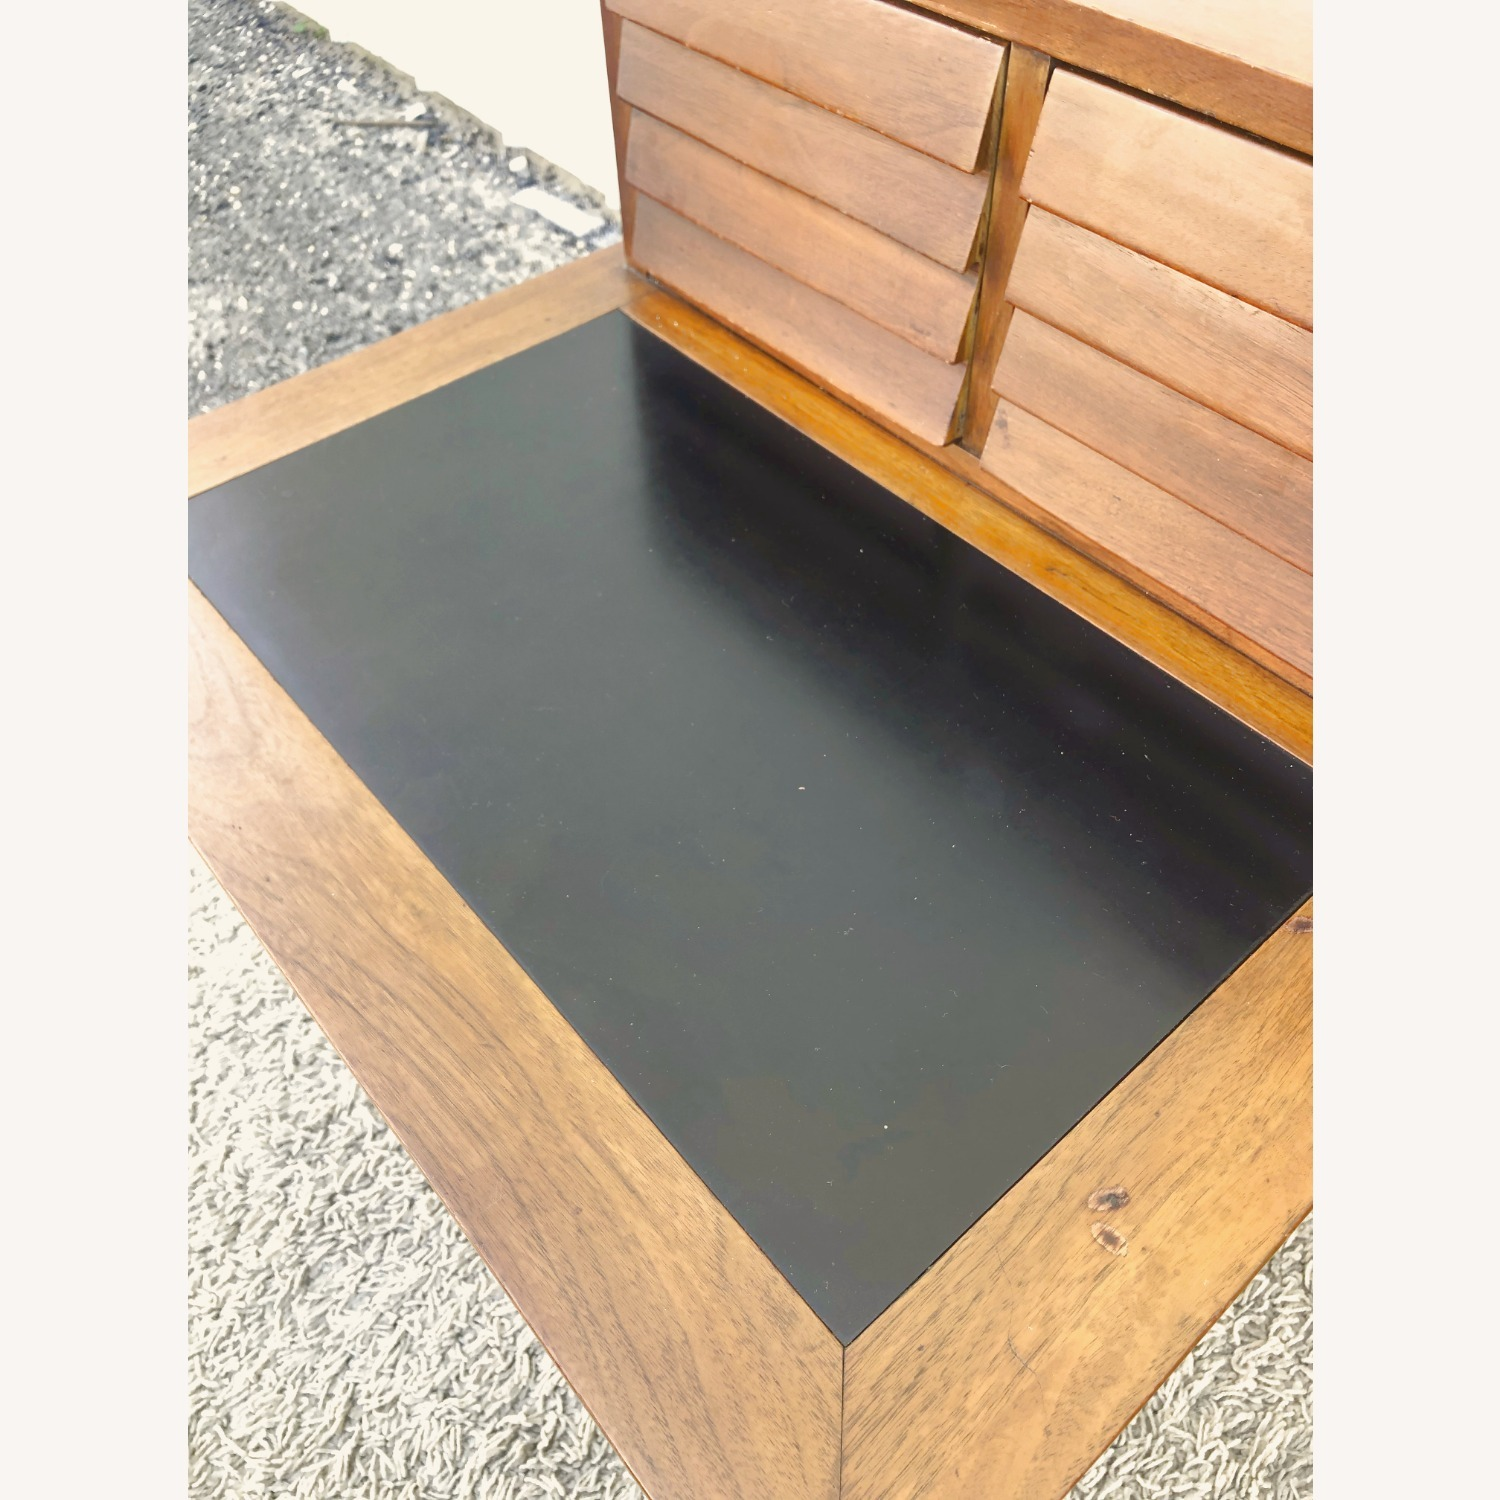 Pair Two Drawer MCM End Tables by Martinsvlle - image-14